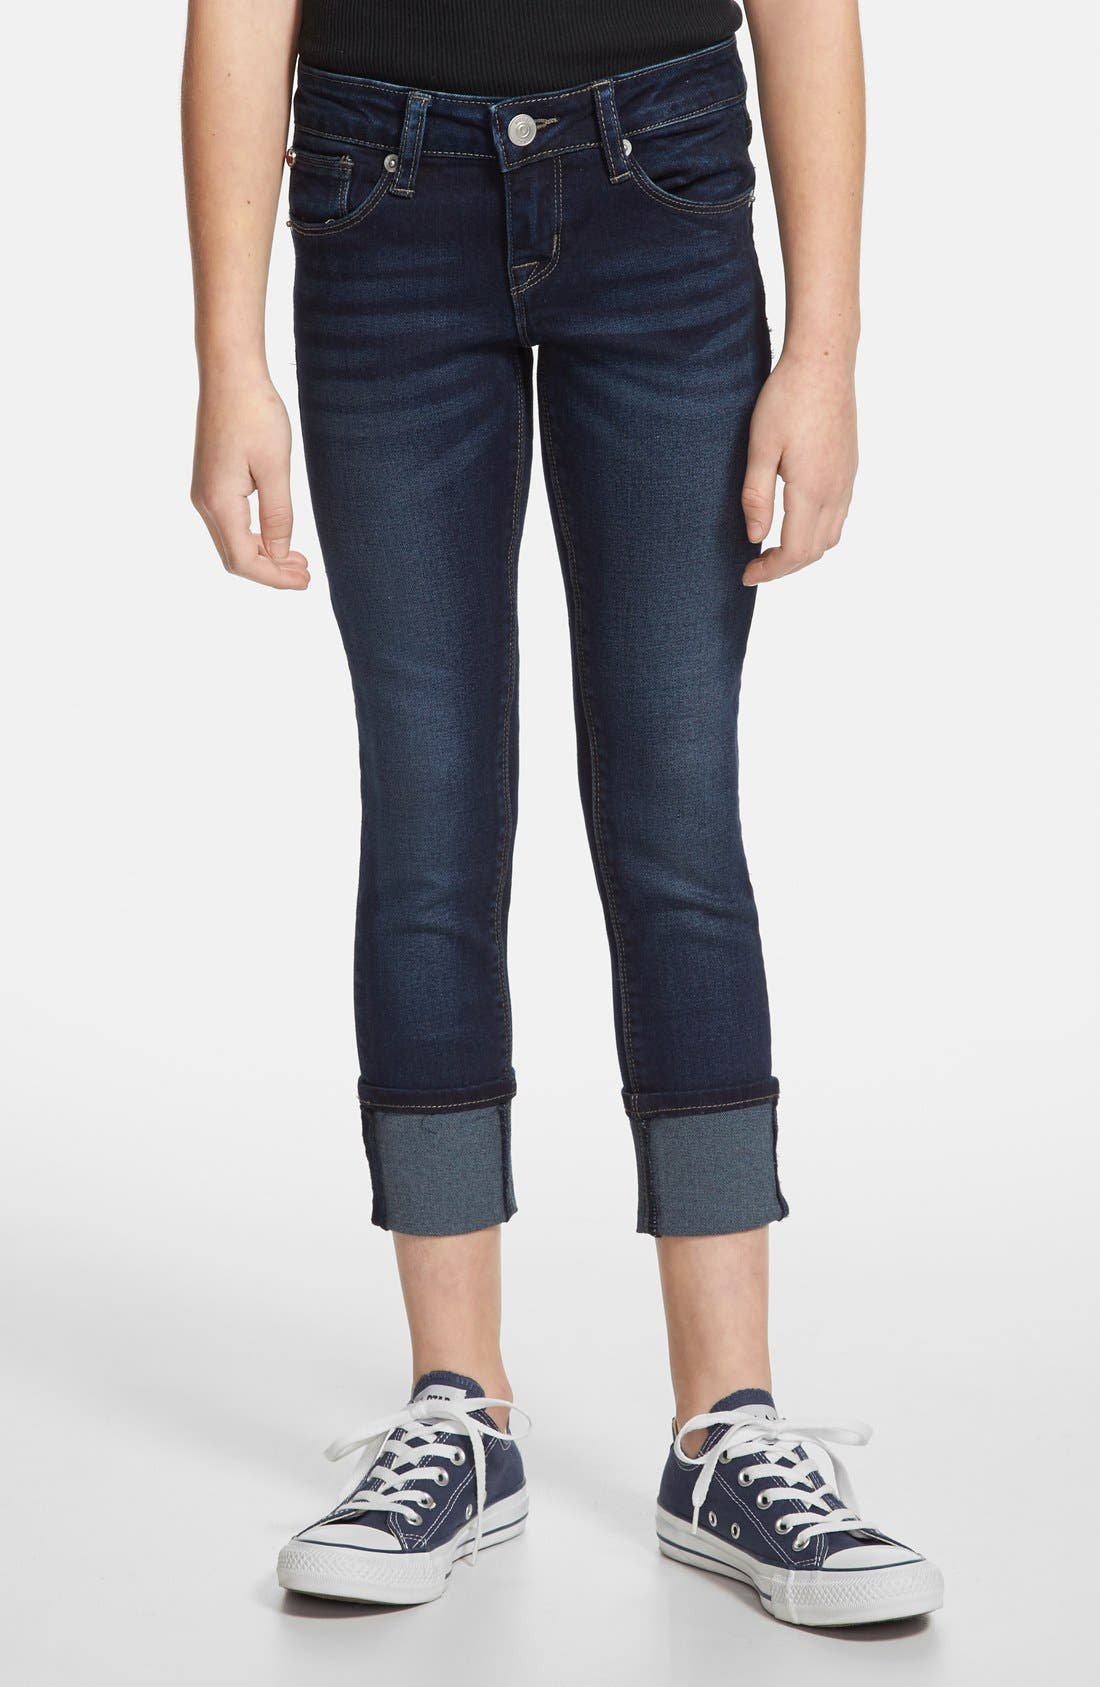 Alternate Image 1 Selected - Hudson Kids 'Ginny' Crop Skinny Jeans (Big Girls)